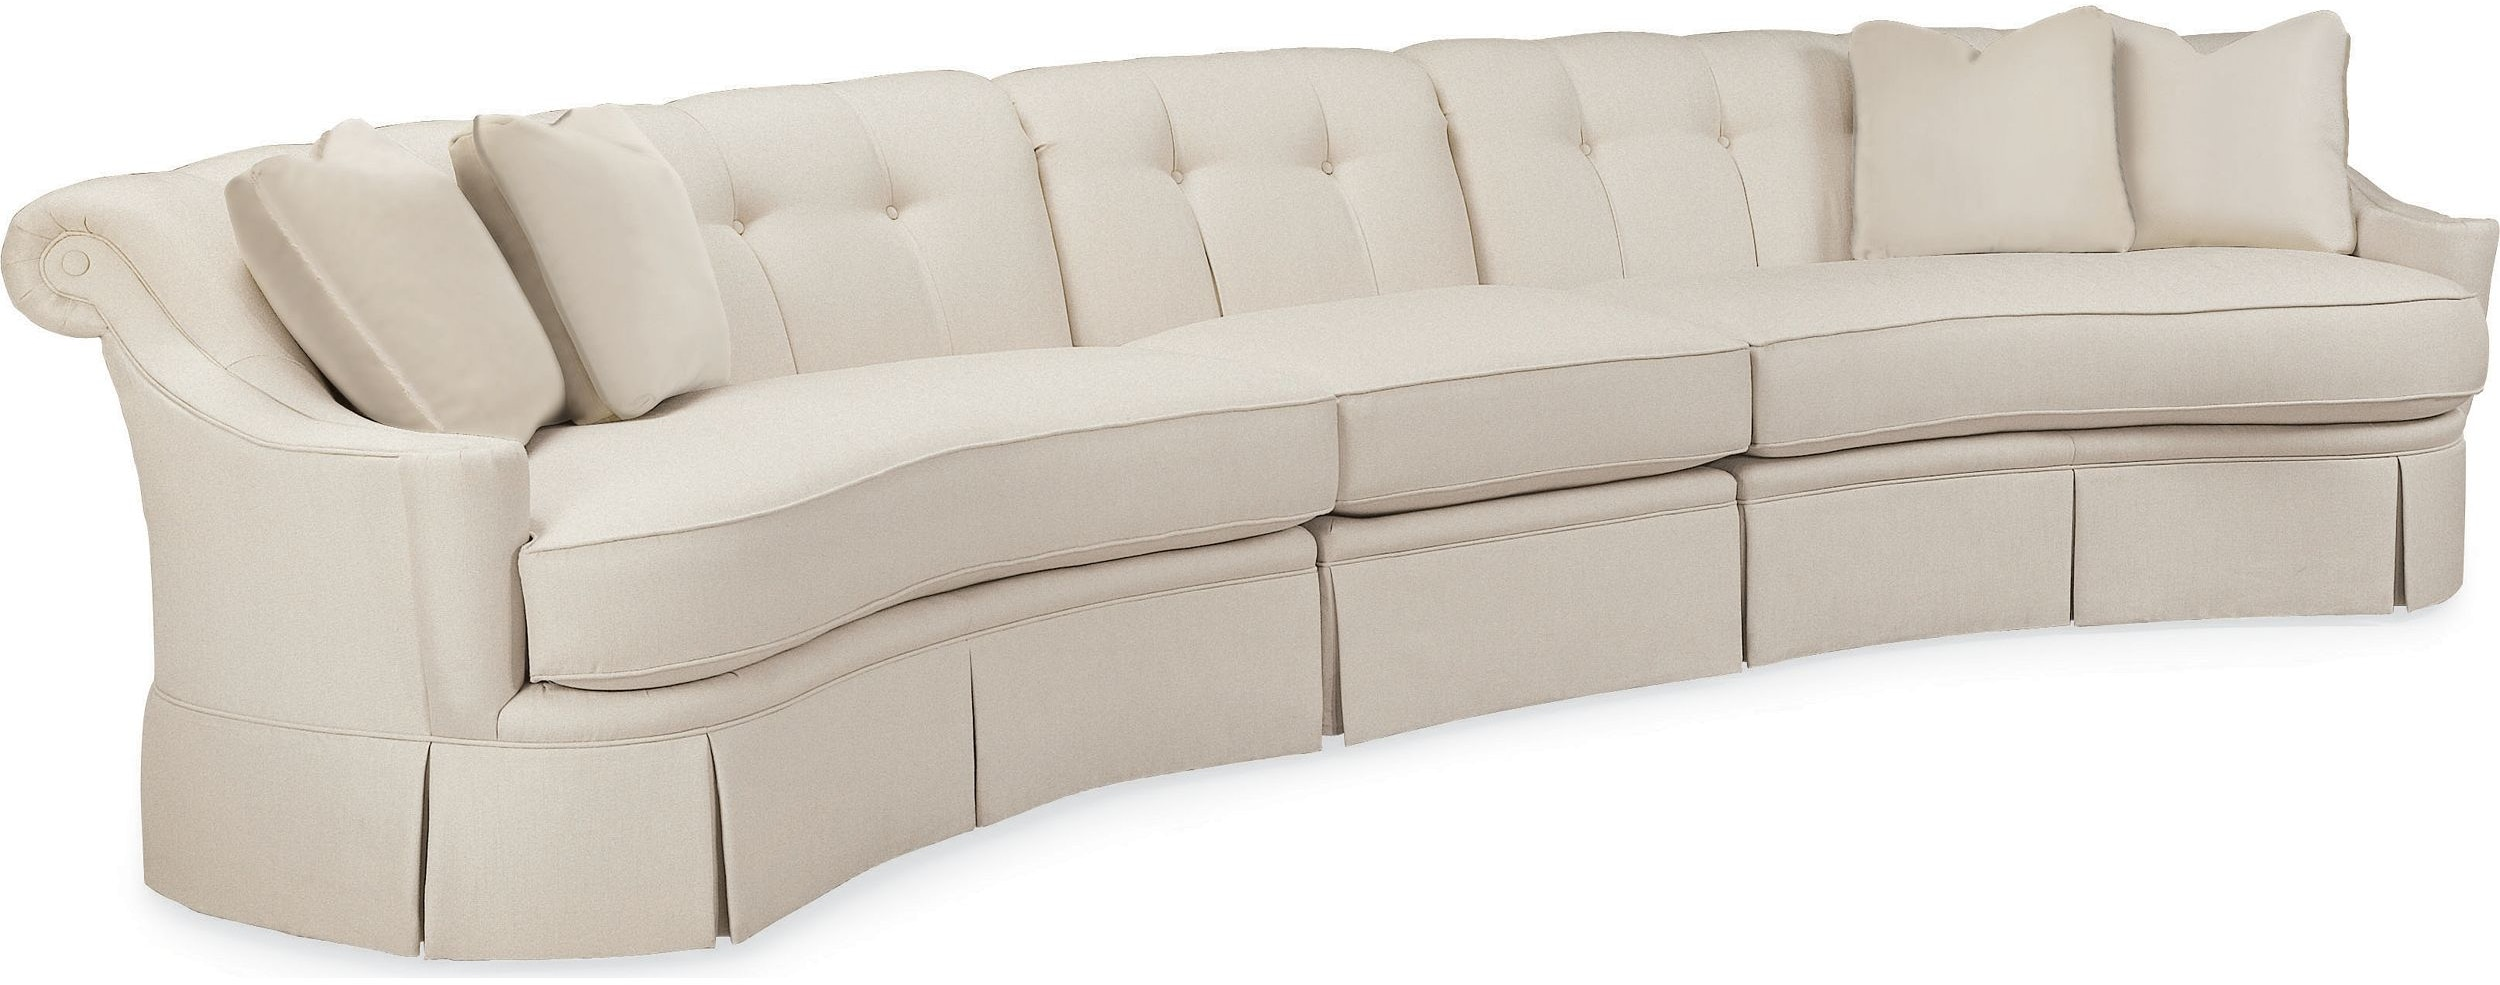 Thomasville Furniture 1179 SECT Living Room Riviera Sectional